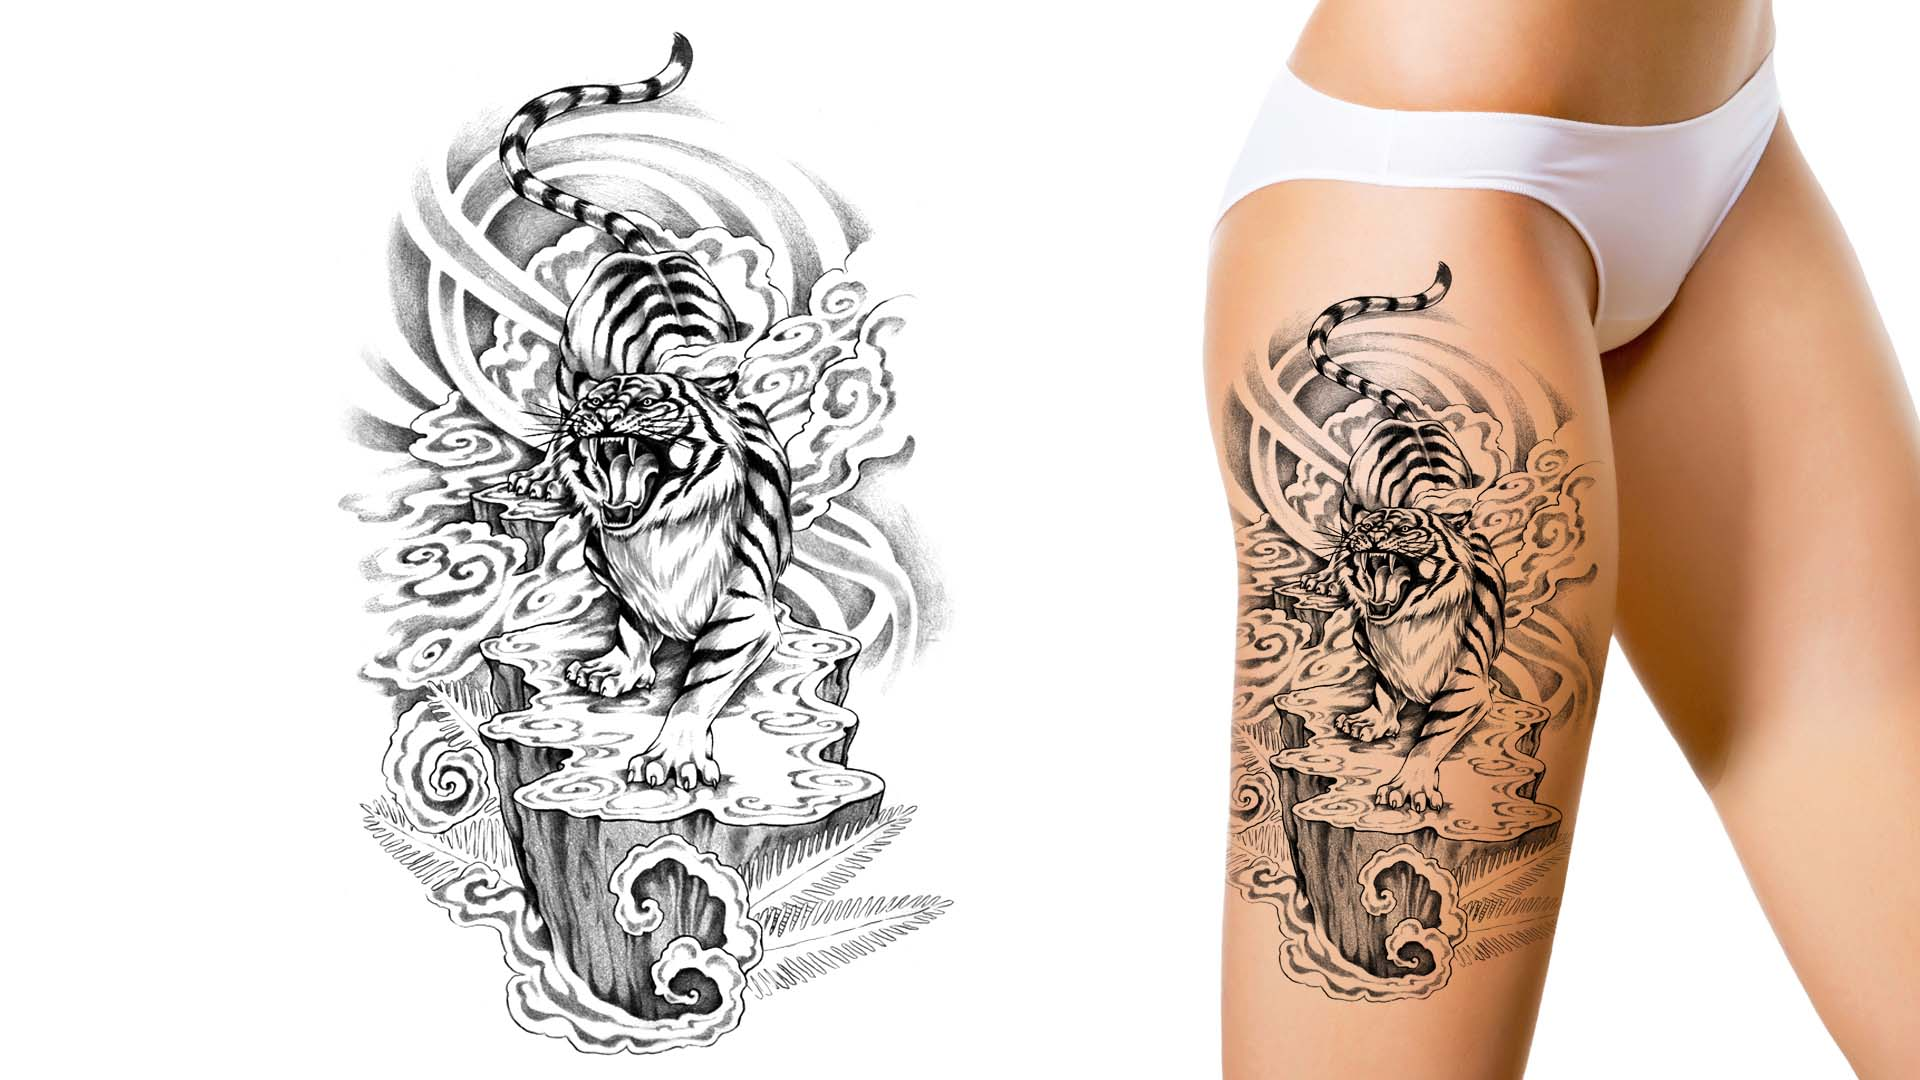 Create a tattoo design free -  Women With Tiger Custom Tattoo Design